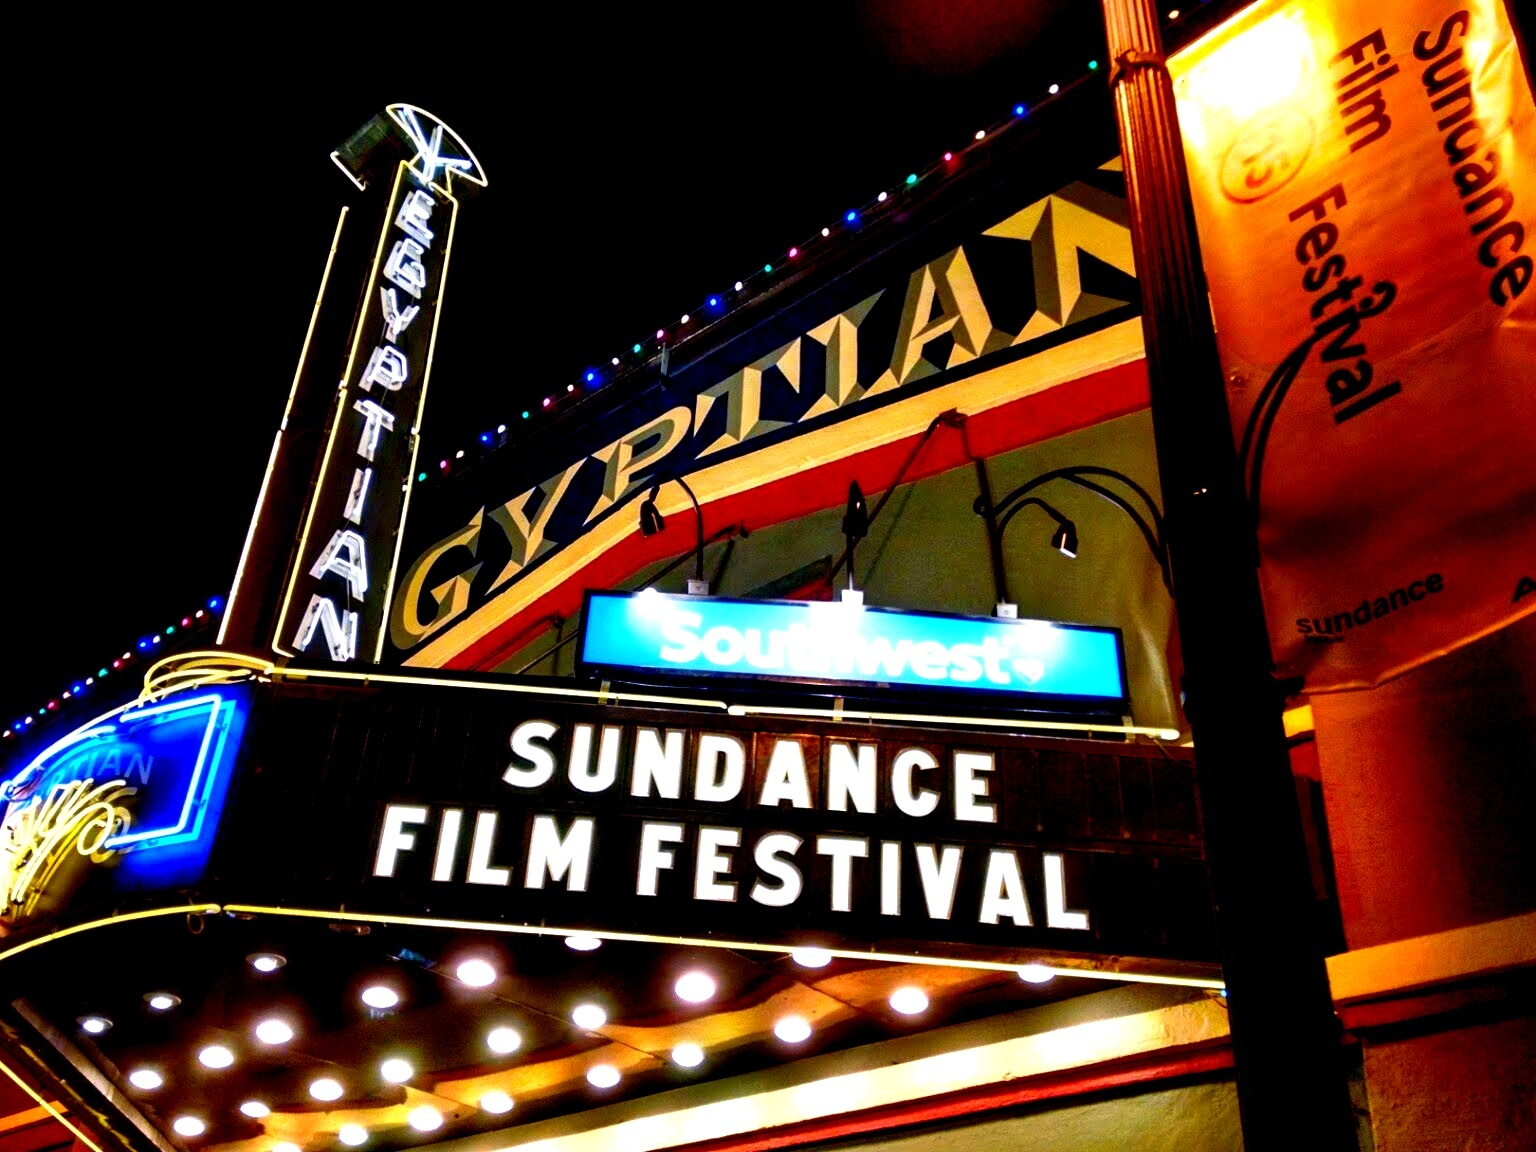 Attend the Sundance Film Festival! PARK CITY,